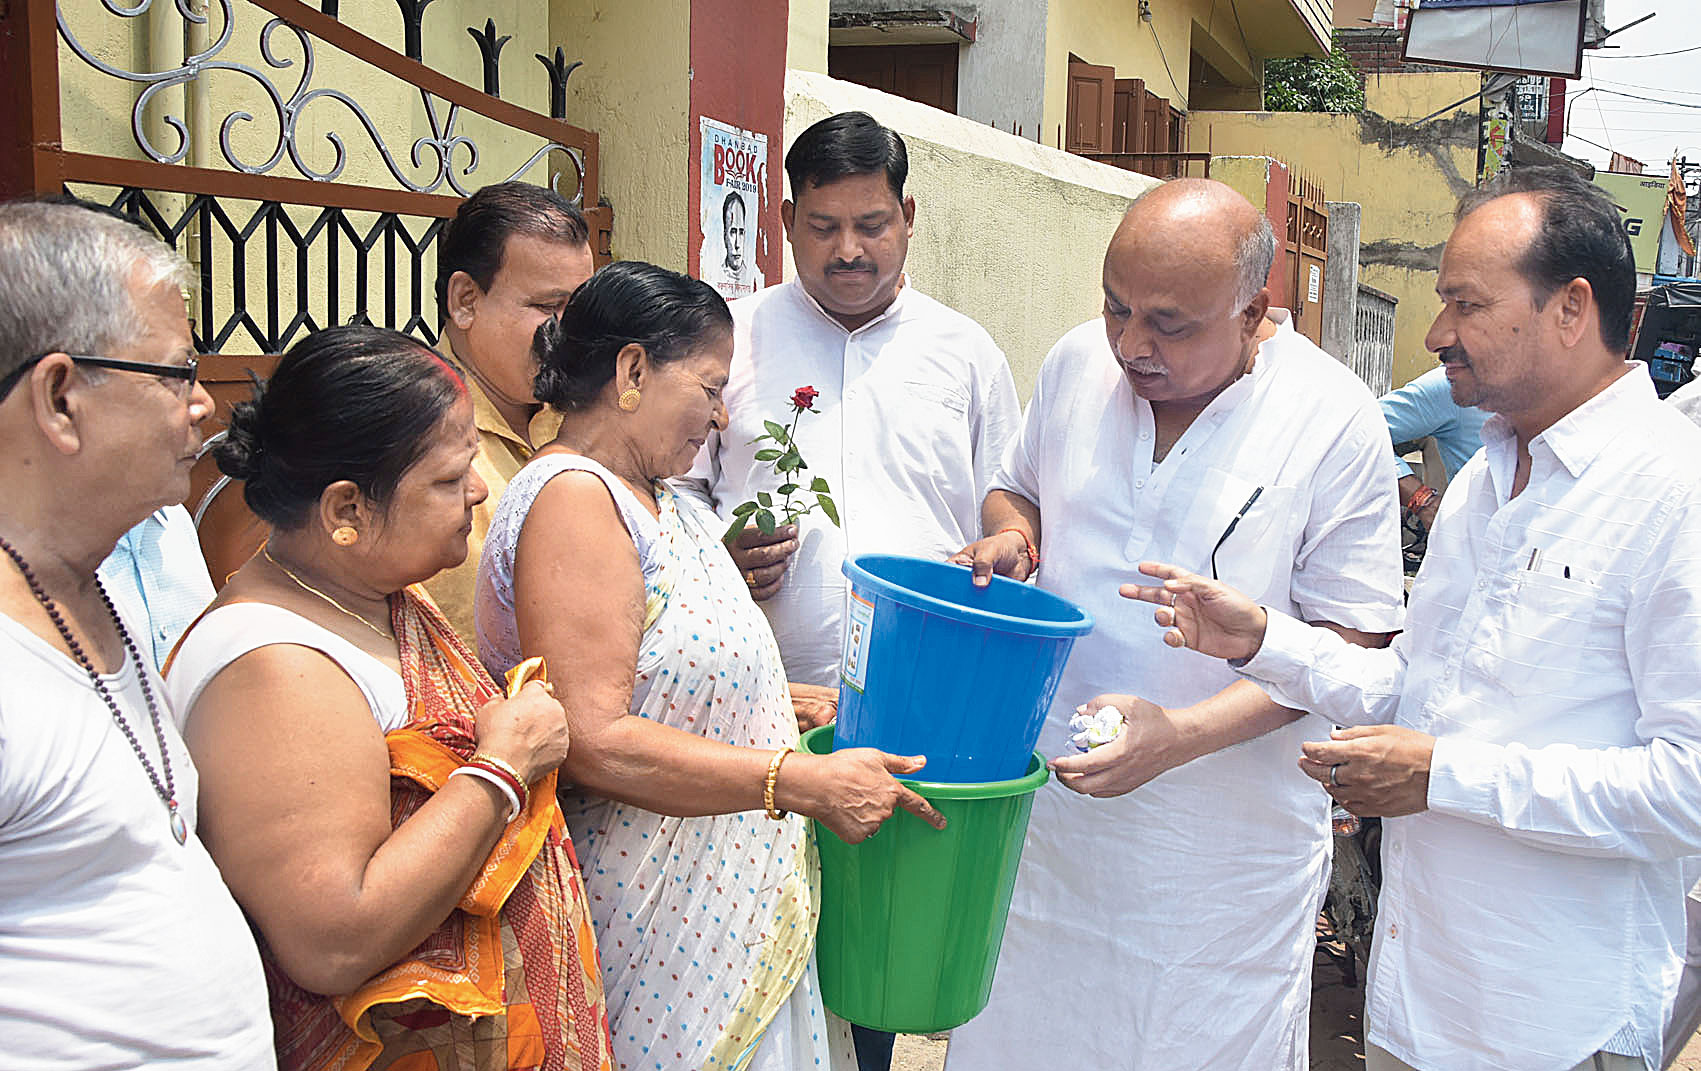 Dhanbad mayor Chandrashekhar Agarwal and municipal commissioner CM Kashyap (right) distribute dustbins among the residents of JC Mallick Road on Thursday.